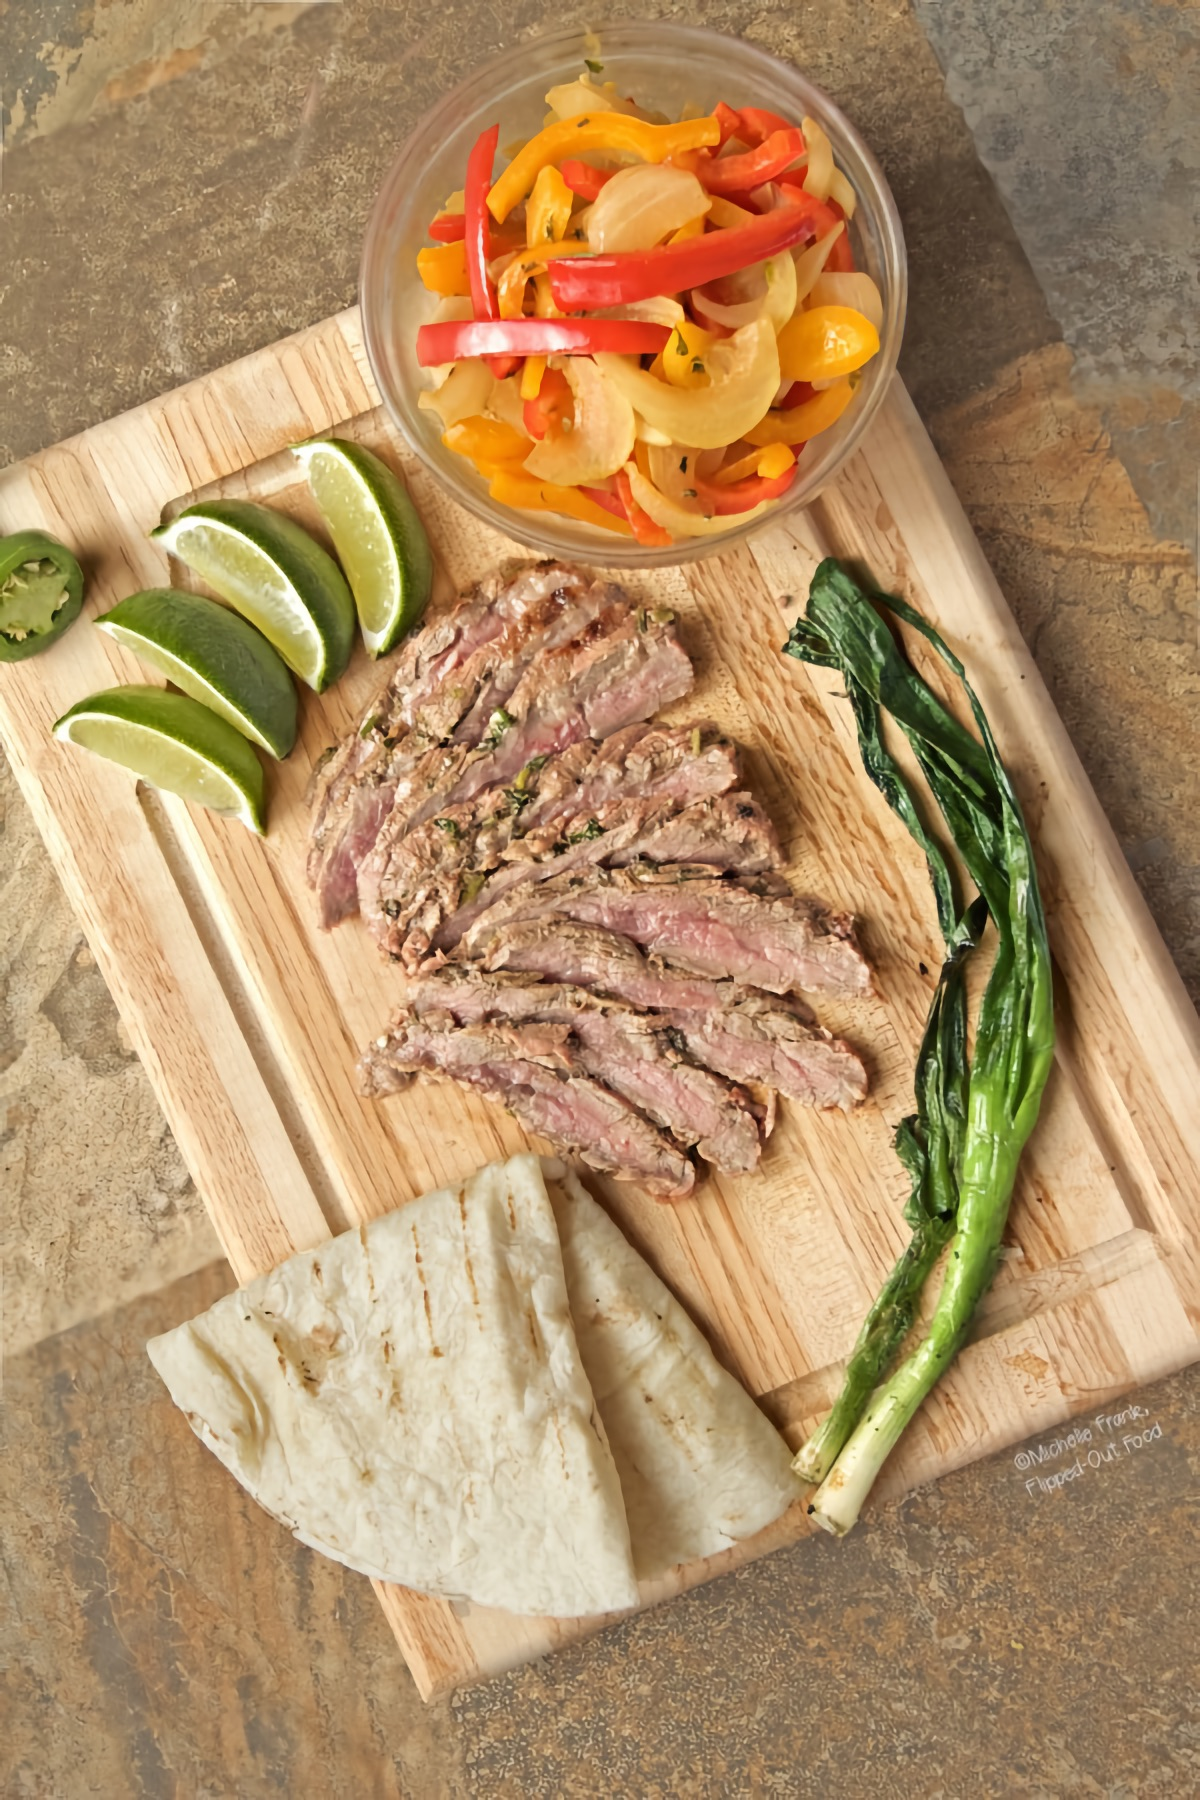 Top view of carne asada with fajita vegetables arranged on a cutting board with a folded flour tortilla, grilled scallions, lime wedges, and the cut end of a jalapeno pepper.